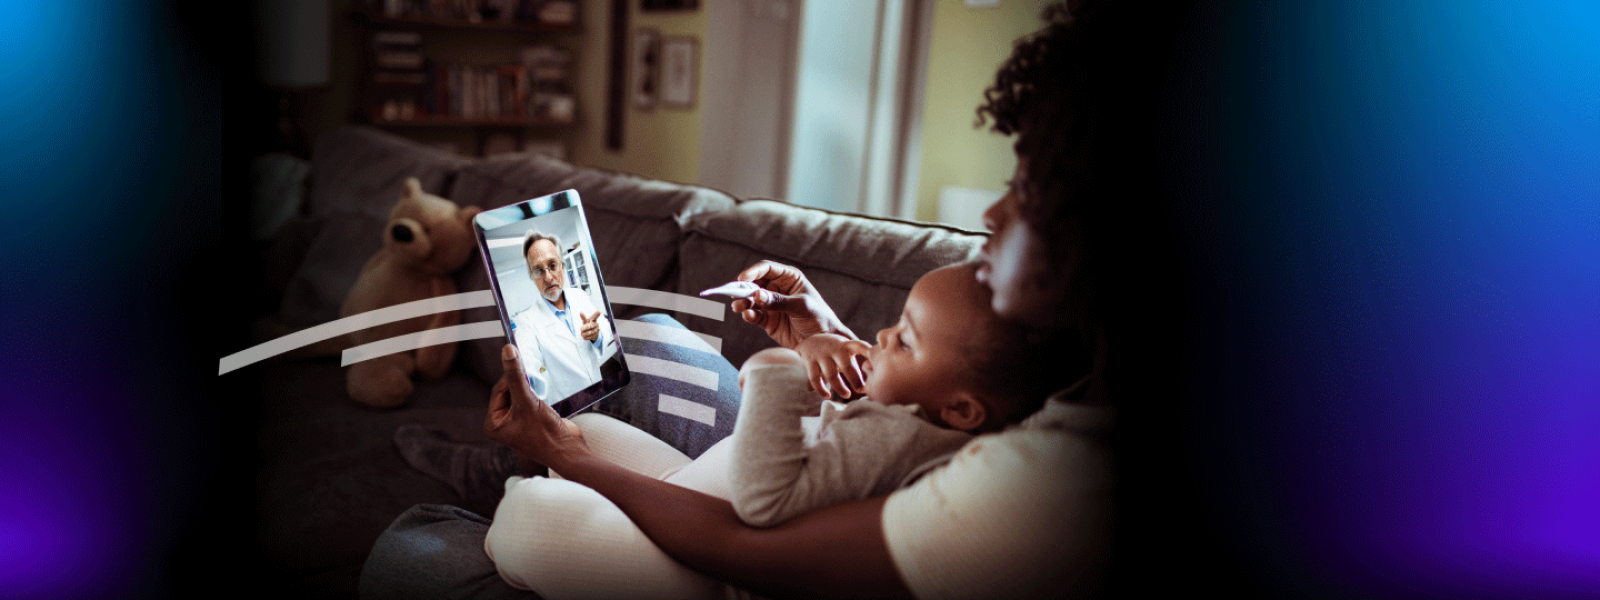 Woman with toddler attending virtual appointment